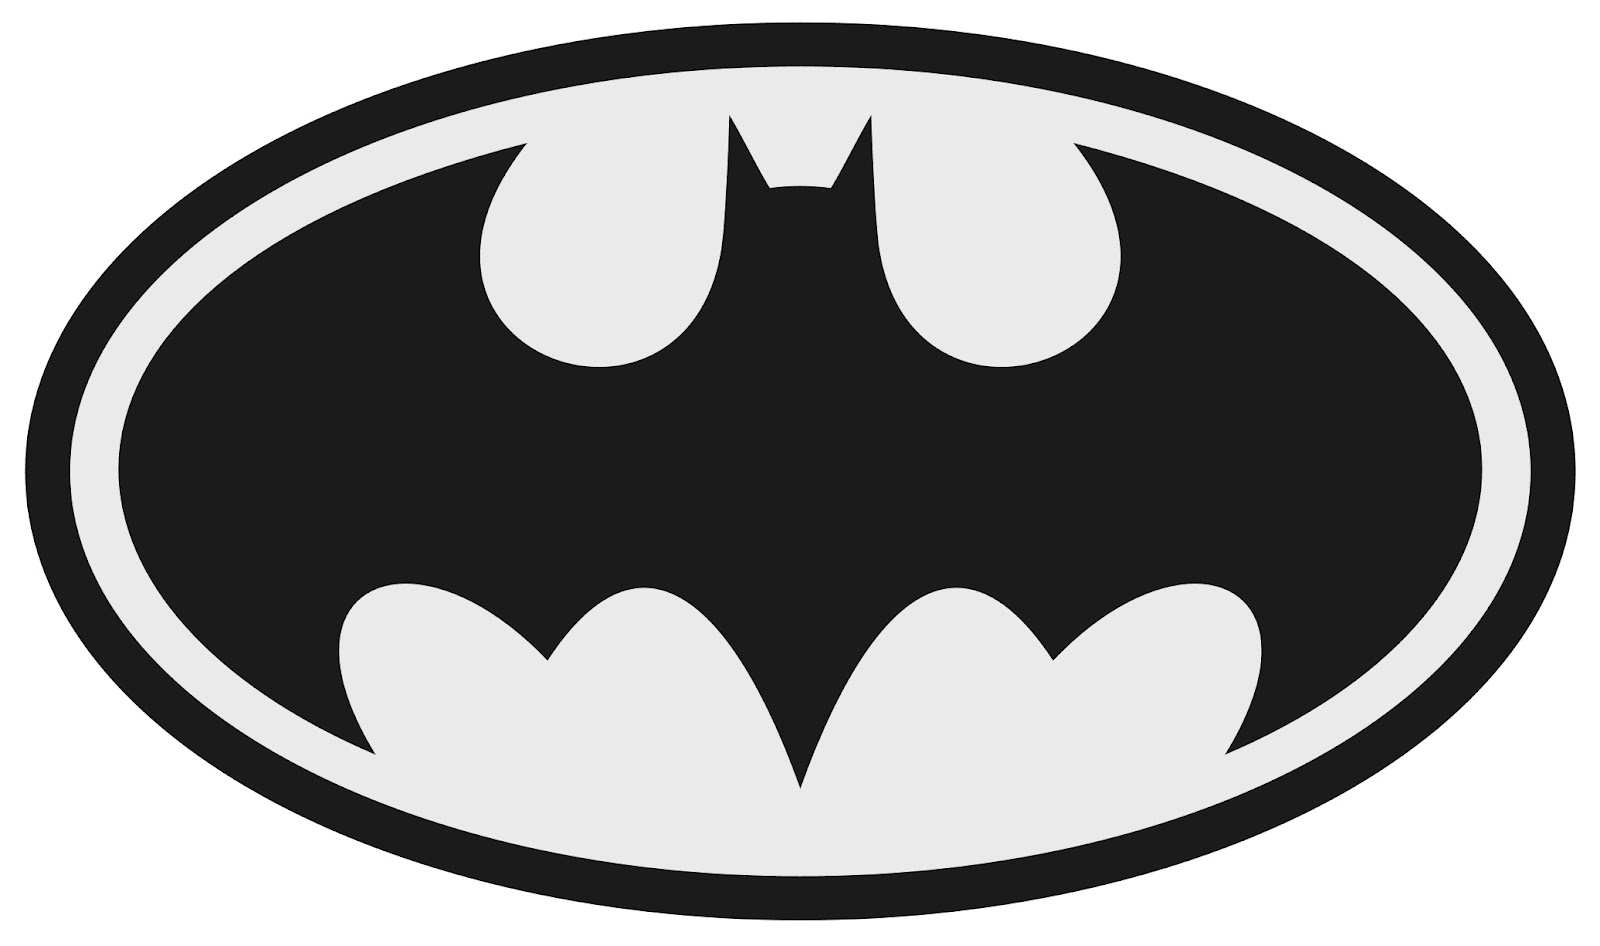 batman logo silhouette at getdrawings com free for personal use rh getdrawings com printable batman logo stencil printable batman logo invitations free